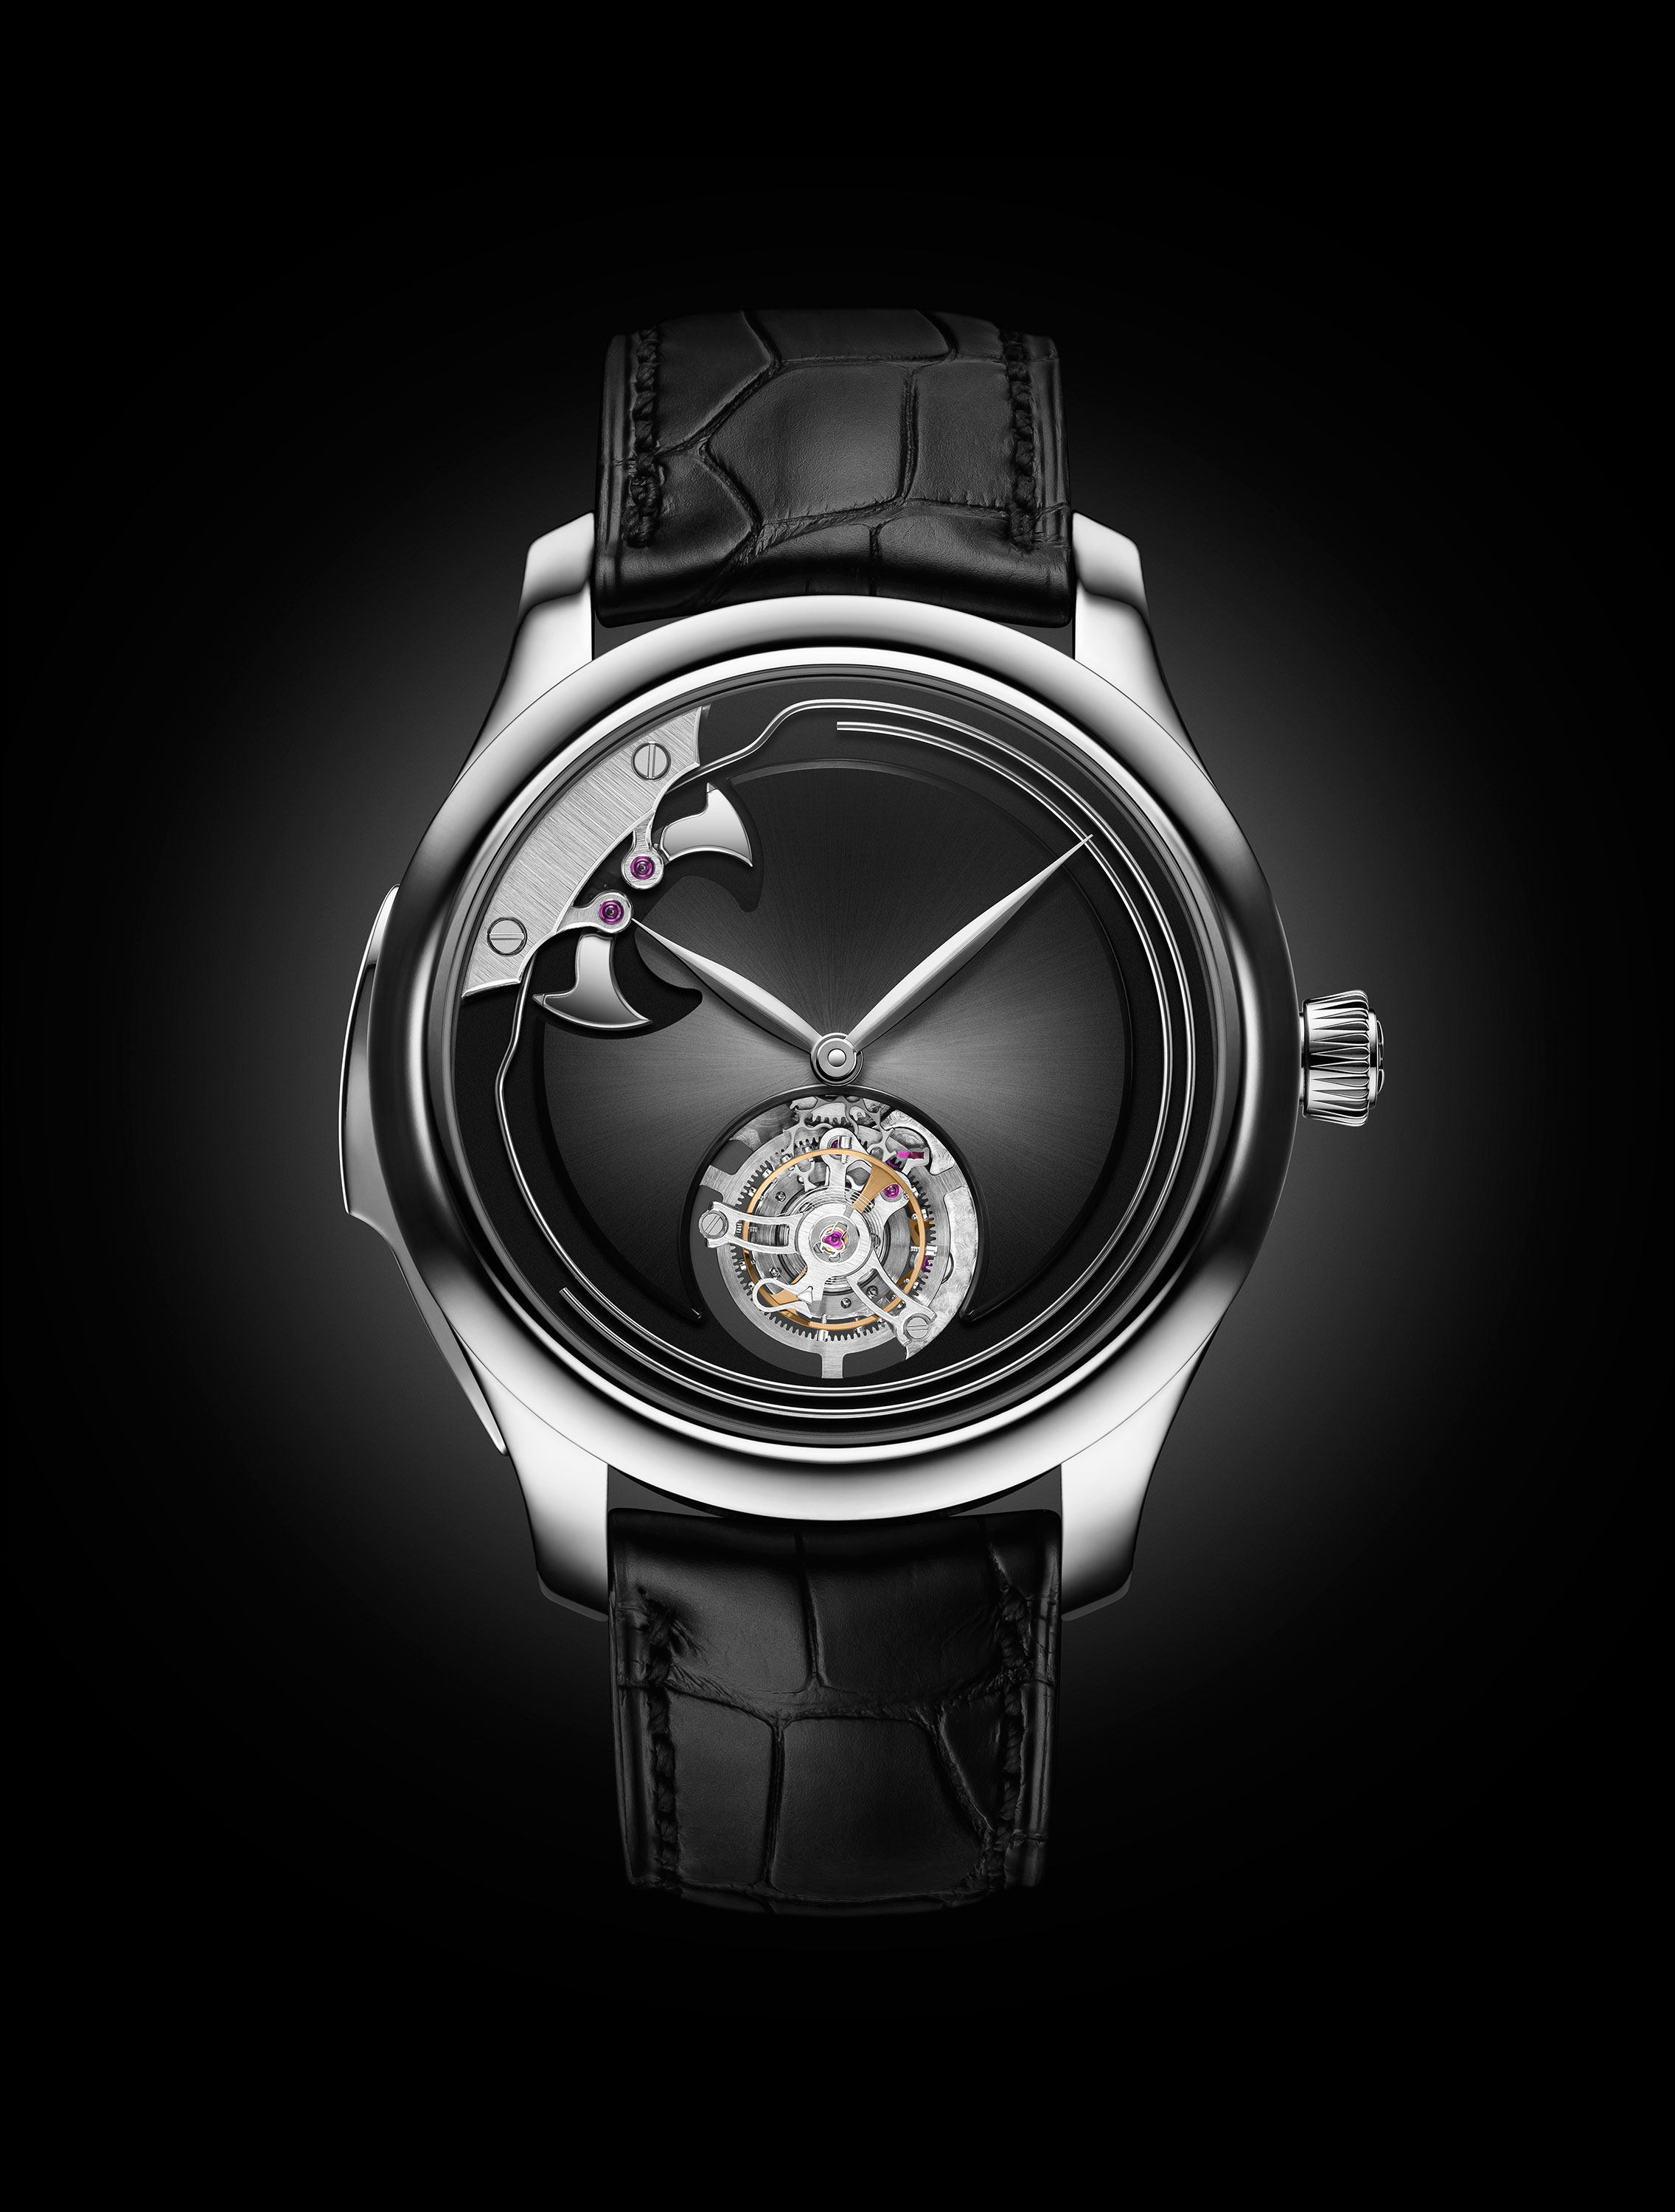 H. Moser & Cie. Endeavour Concept Minute Repeater Tourbillon